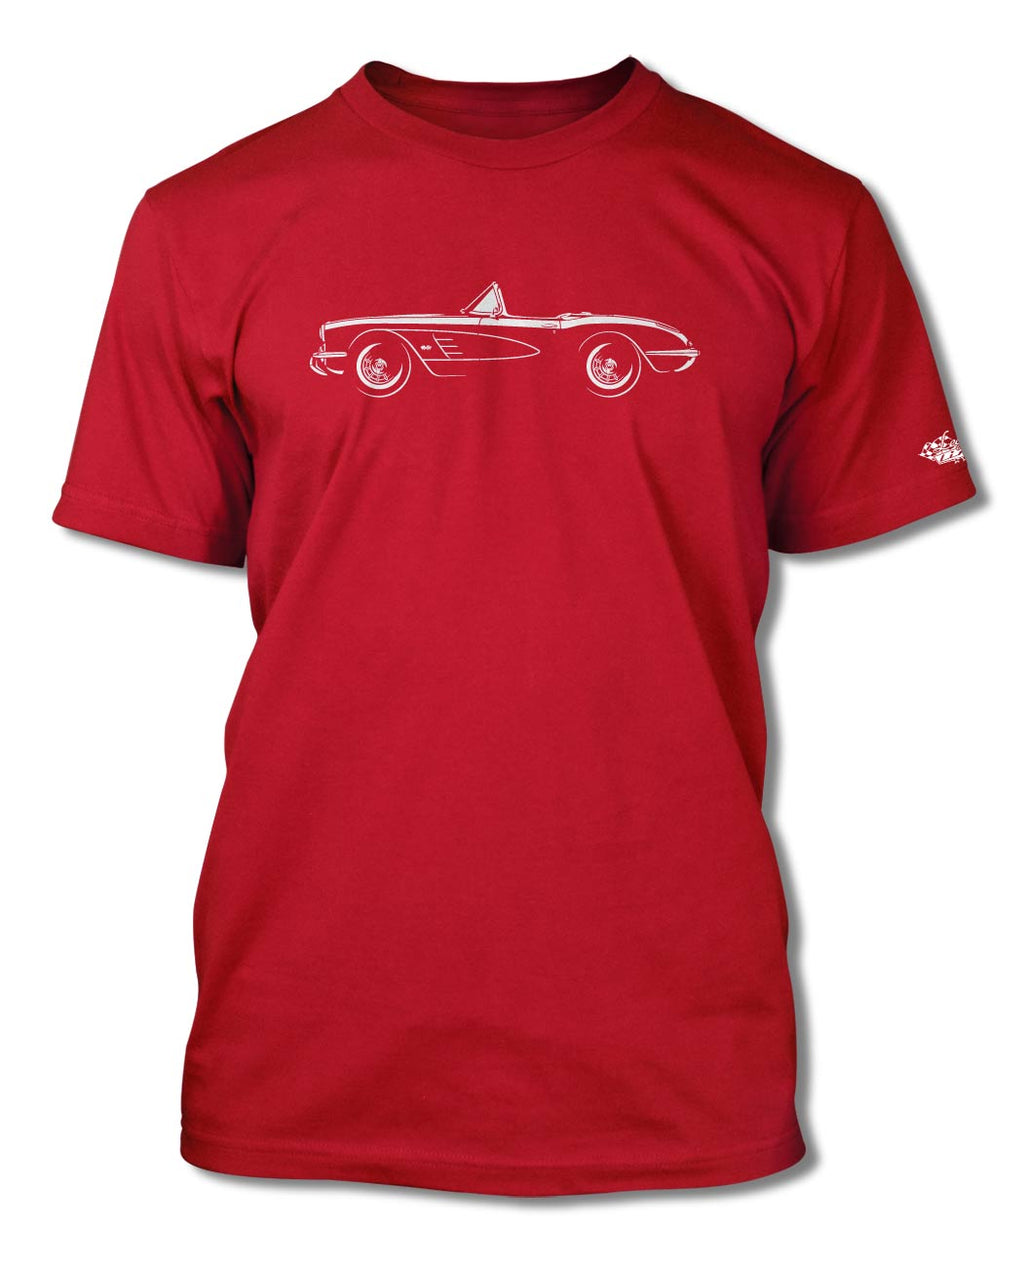 1958 Chevrolet Corvette Convertible C1 T-Shirt - Men - Side View